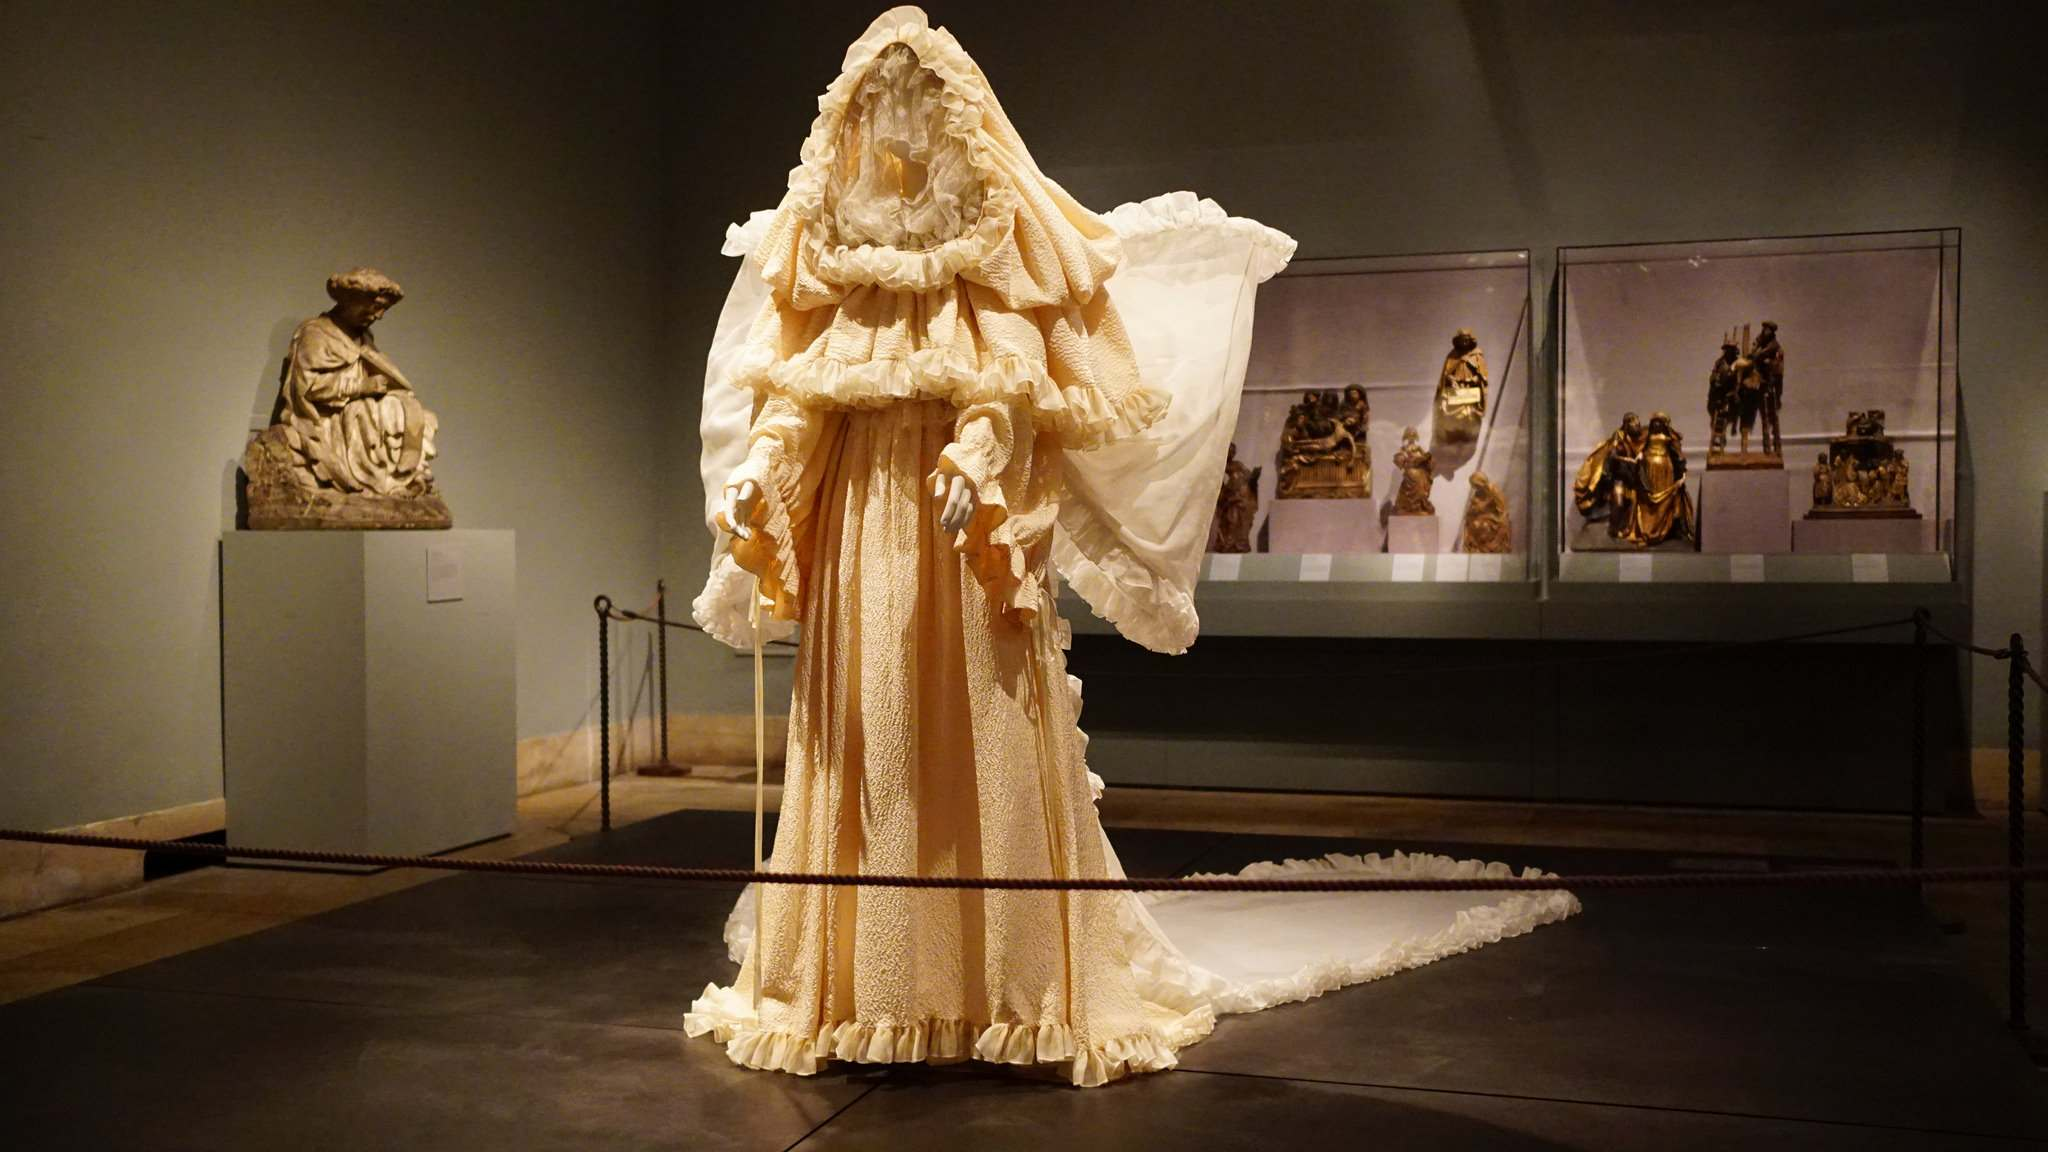 heavenly bodies9 Heavenly Bodies: Fashion and the Catholic Imagination in MET